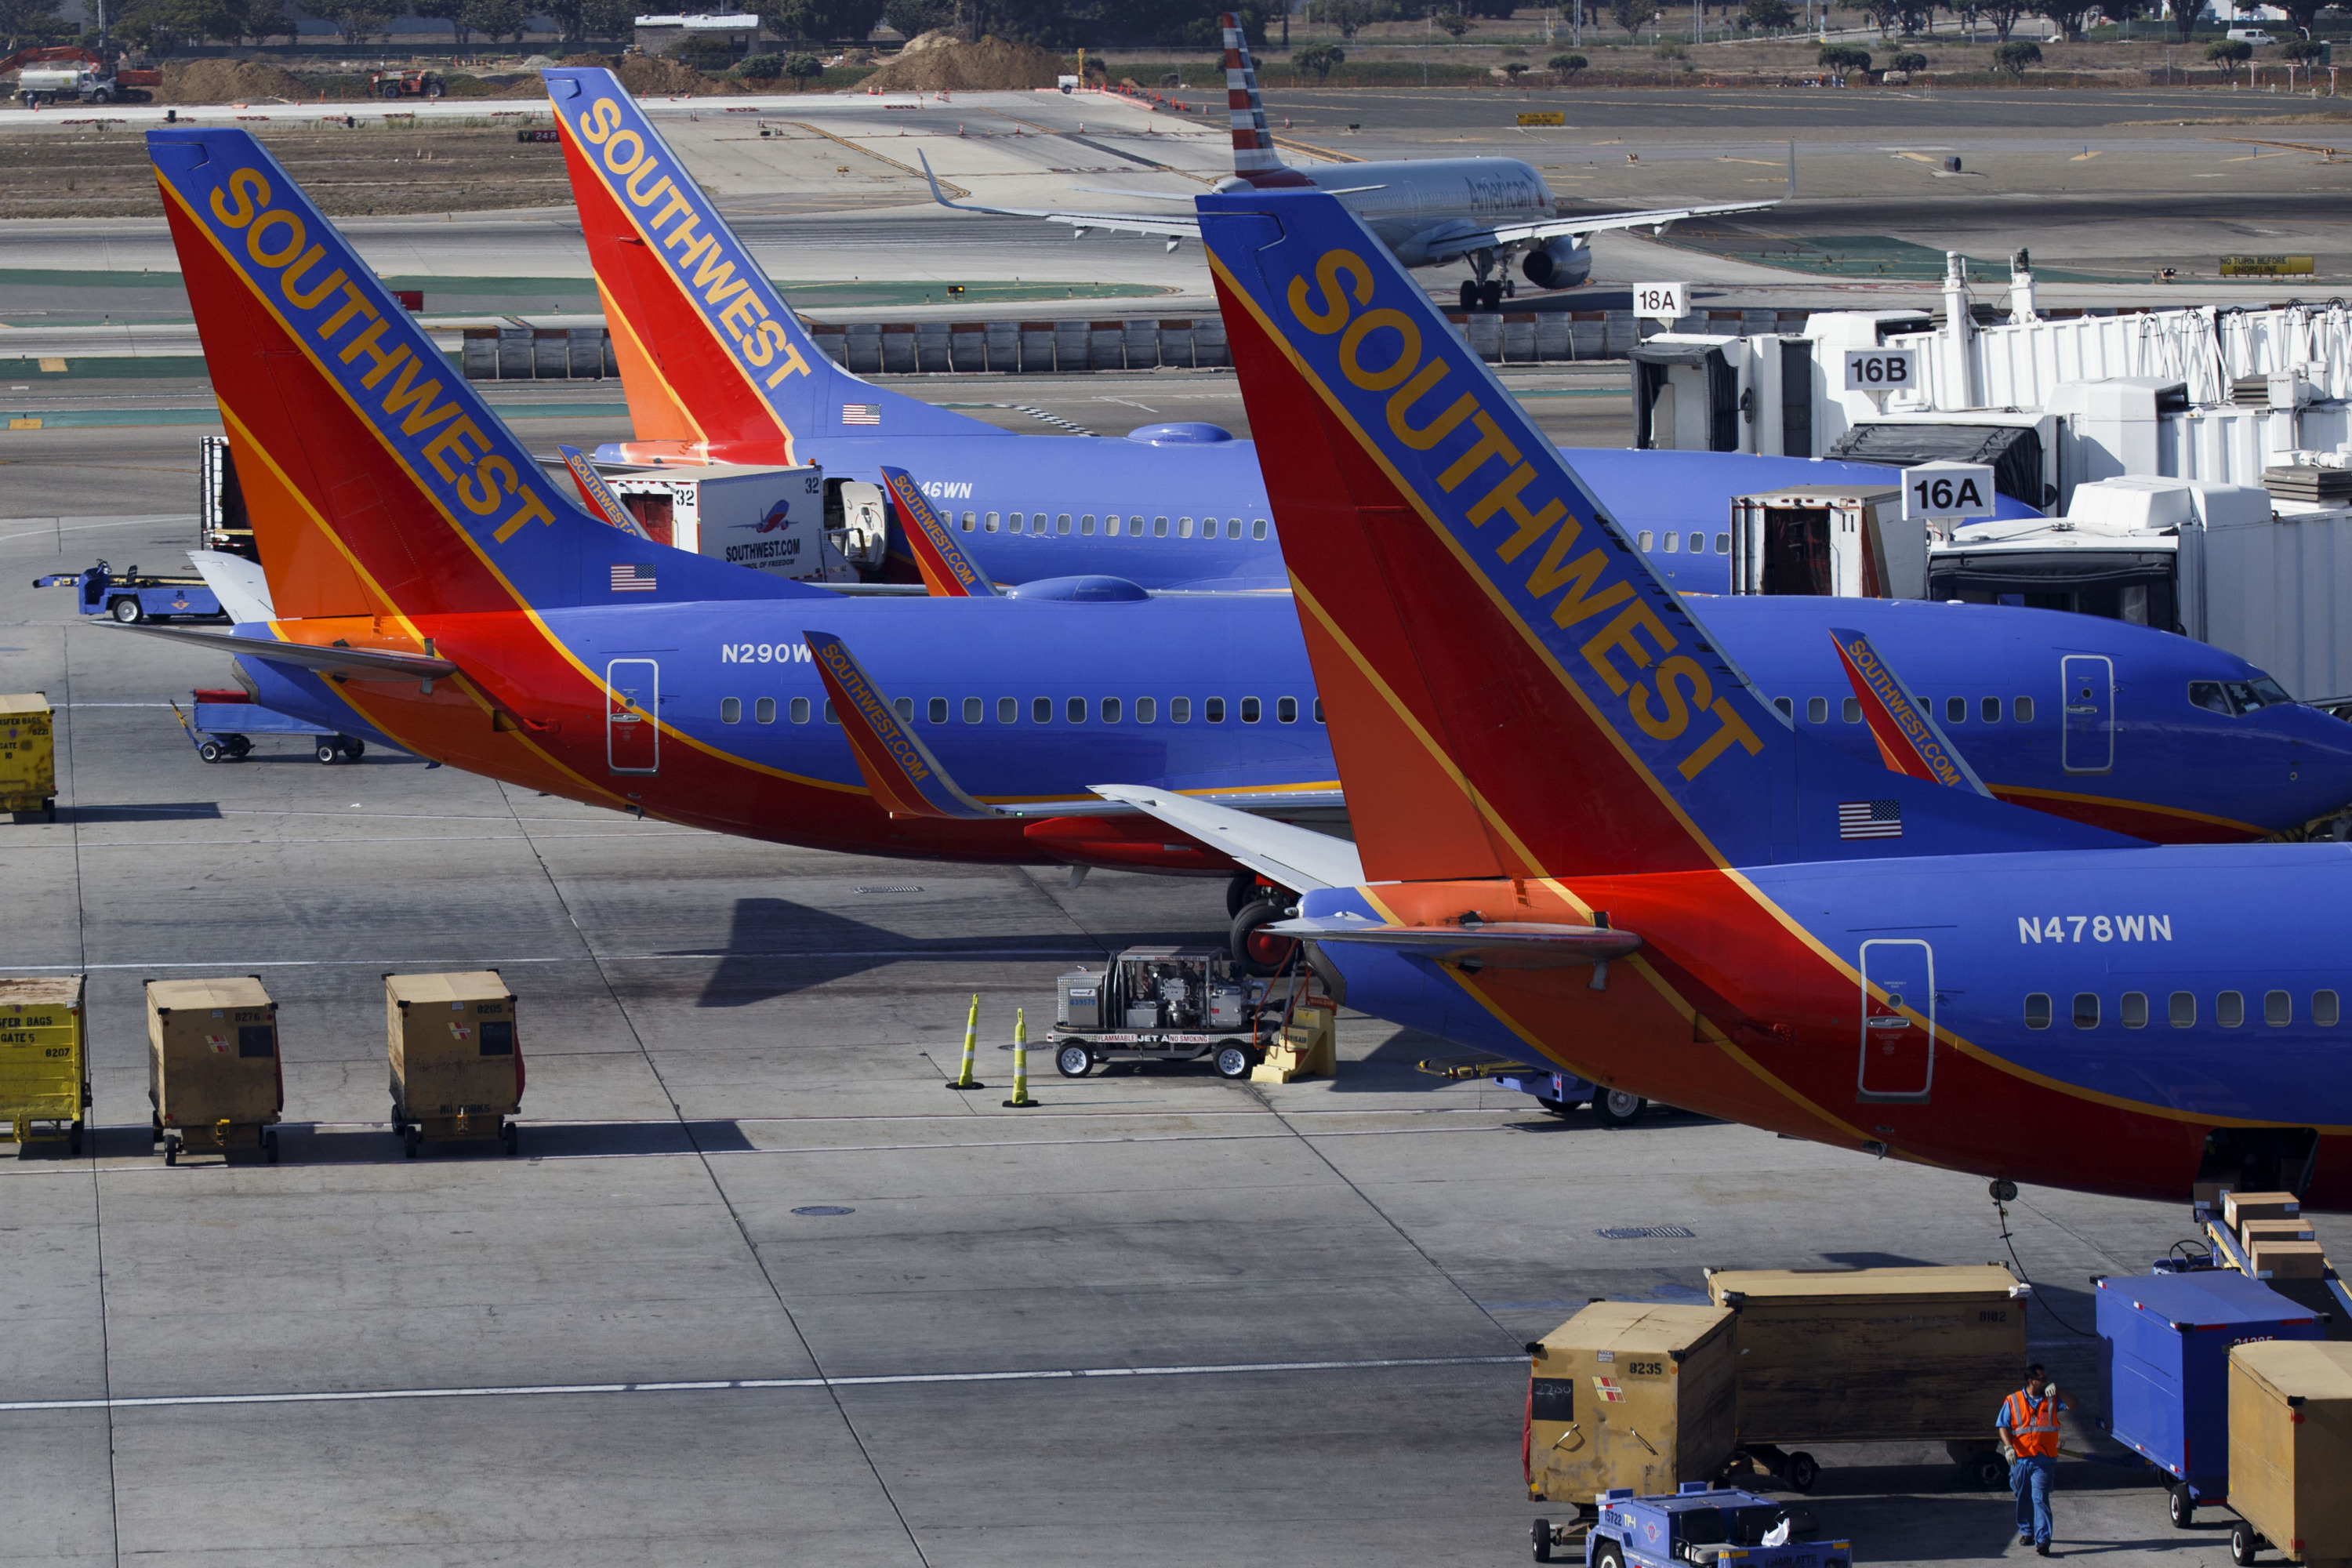 Death on Southwest Plane Shatters Unprecedented Safety String